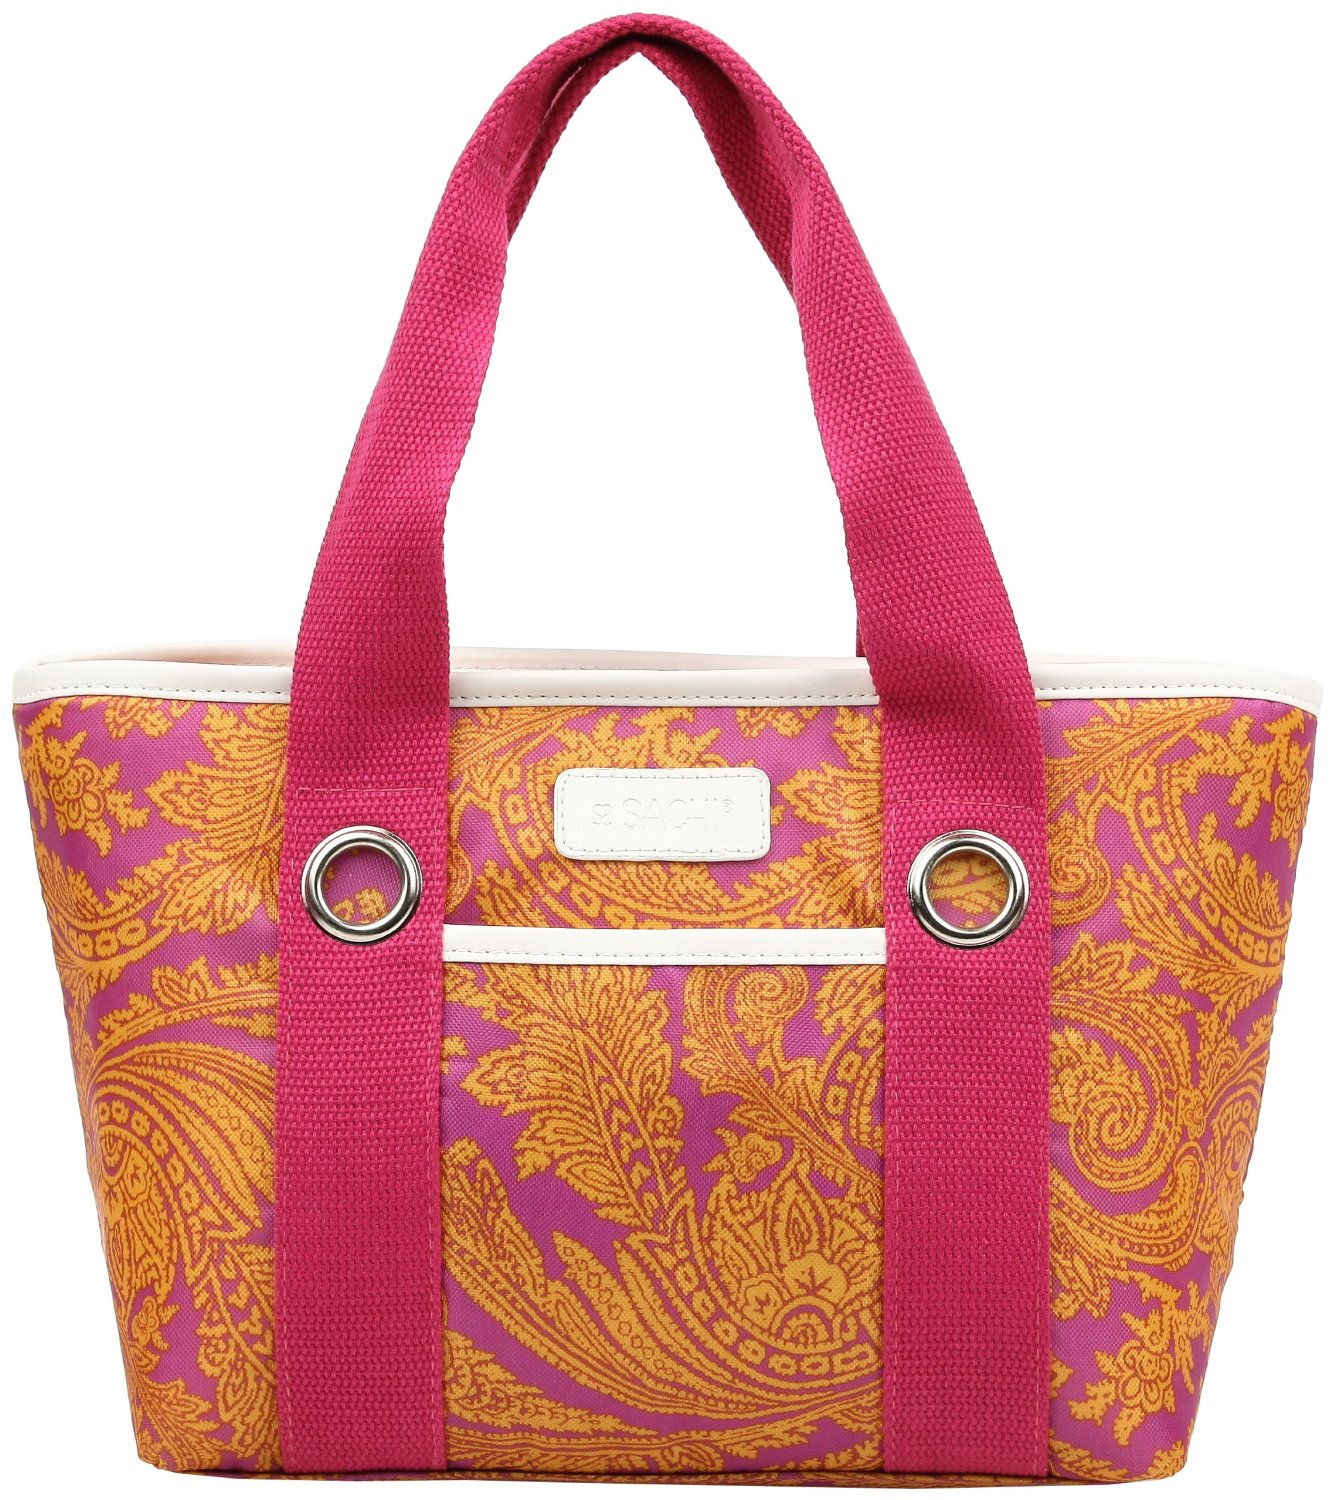 Sachi pink insulated fashion lunch tote 67